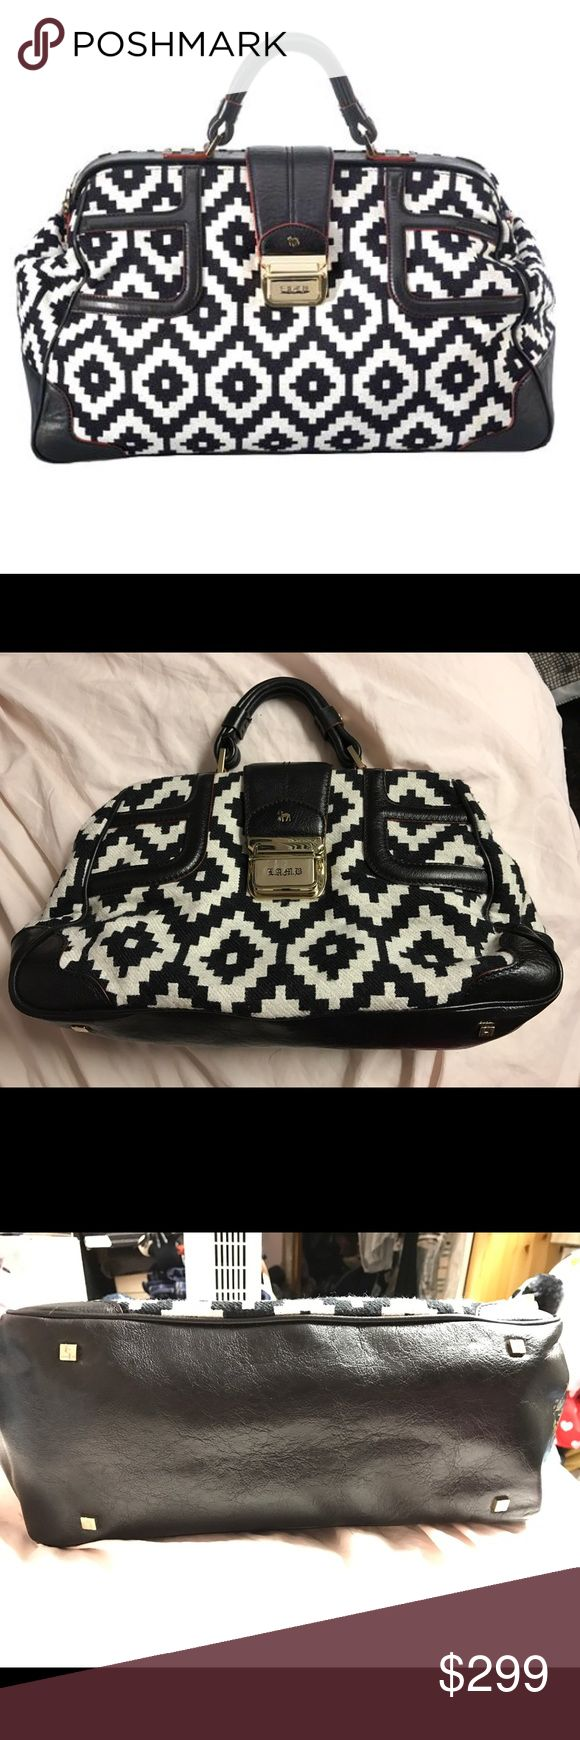 "LAMB Gwen Stefani Black and white Tweed Bag Have here a SUPER RARE bag from LAMB. This was purchased at their Sample Sale a few years ago. Black Leather trim with tweed on body. I used this once/twice. Bag looks almost new!! Please see pics As always Authentic 100 %, Retails $495.                 Width 17.0"" Height 10.0"" Depth 7.25"" Handle Drop 3.5"" L.A.M.B. Bags Satchels"